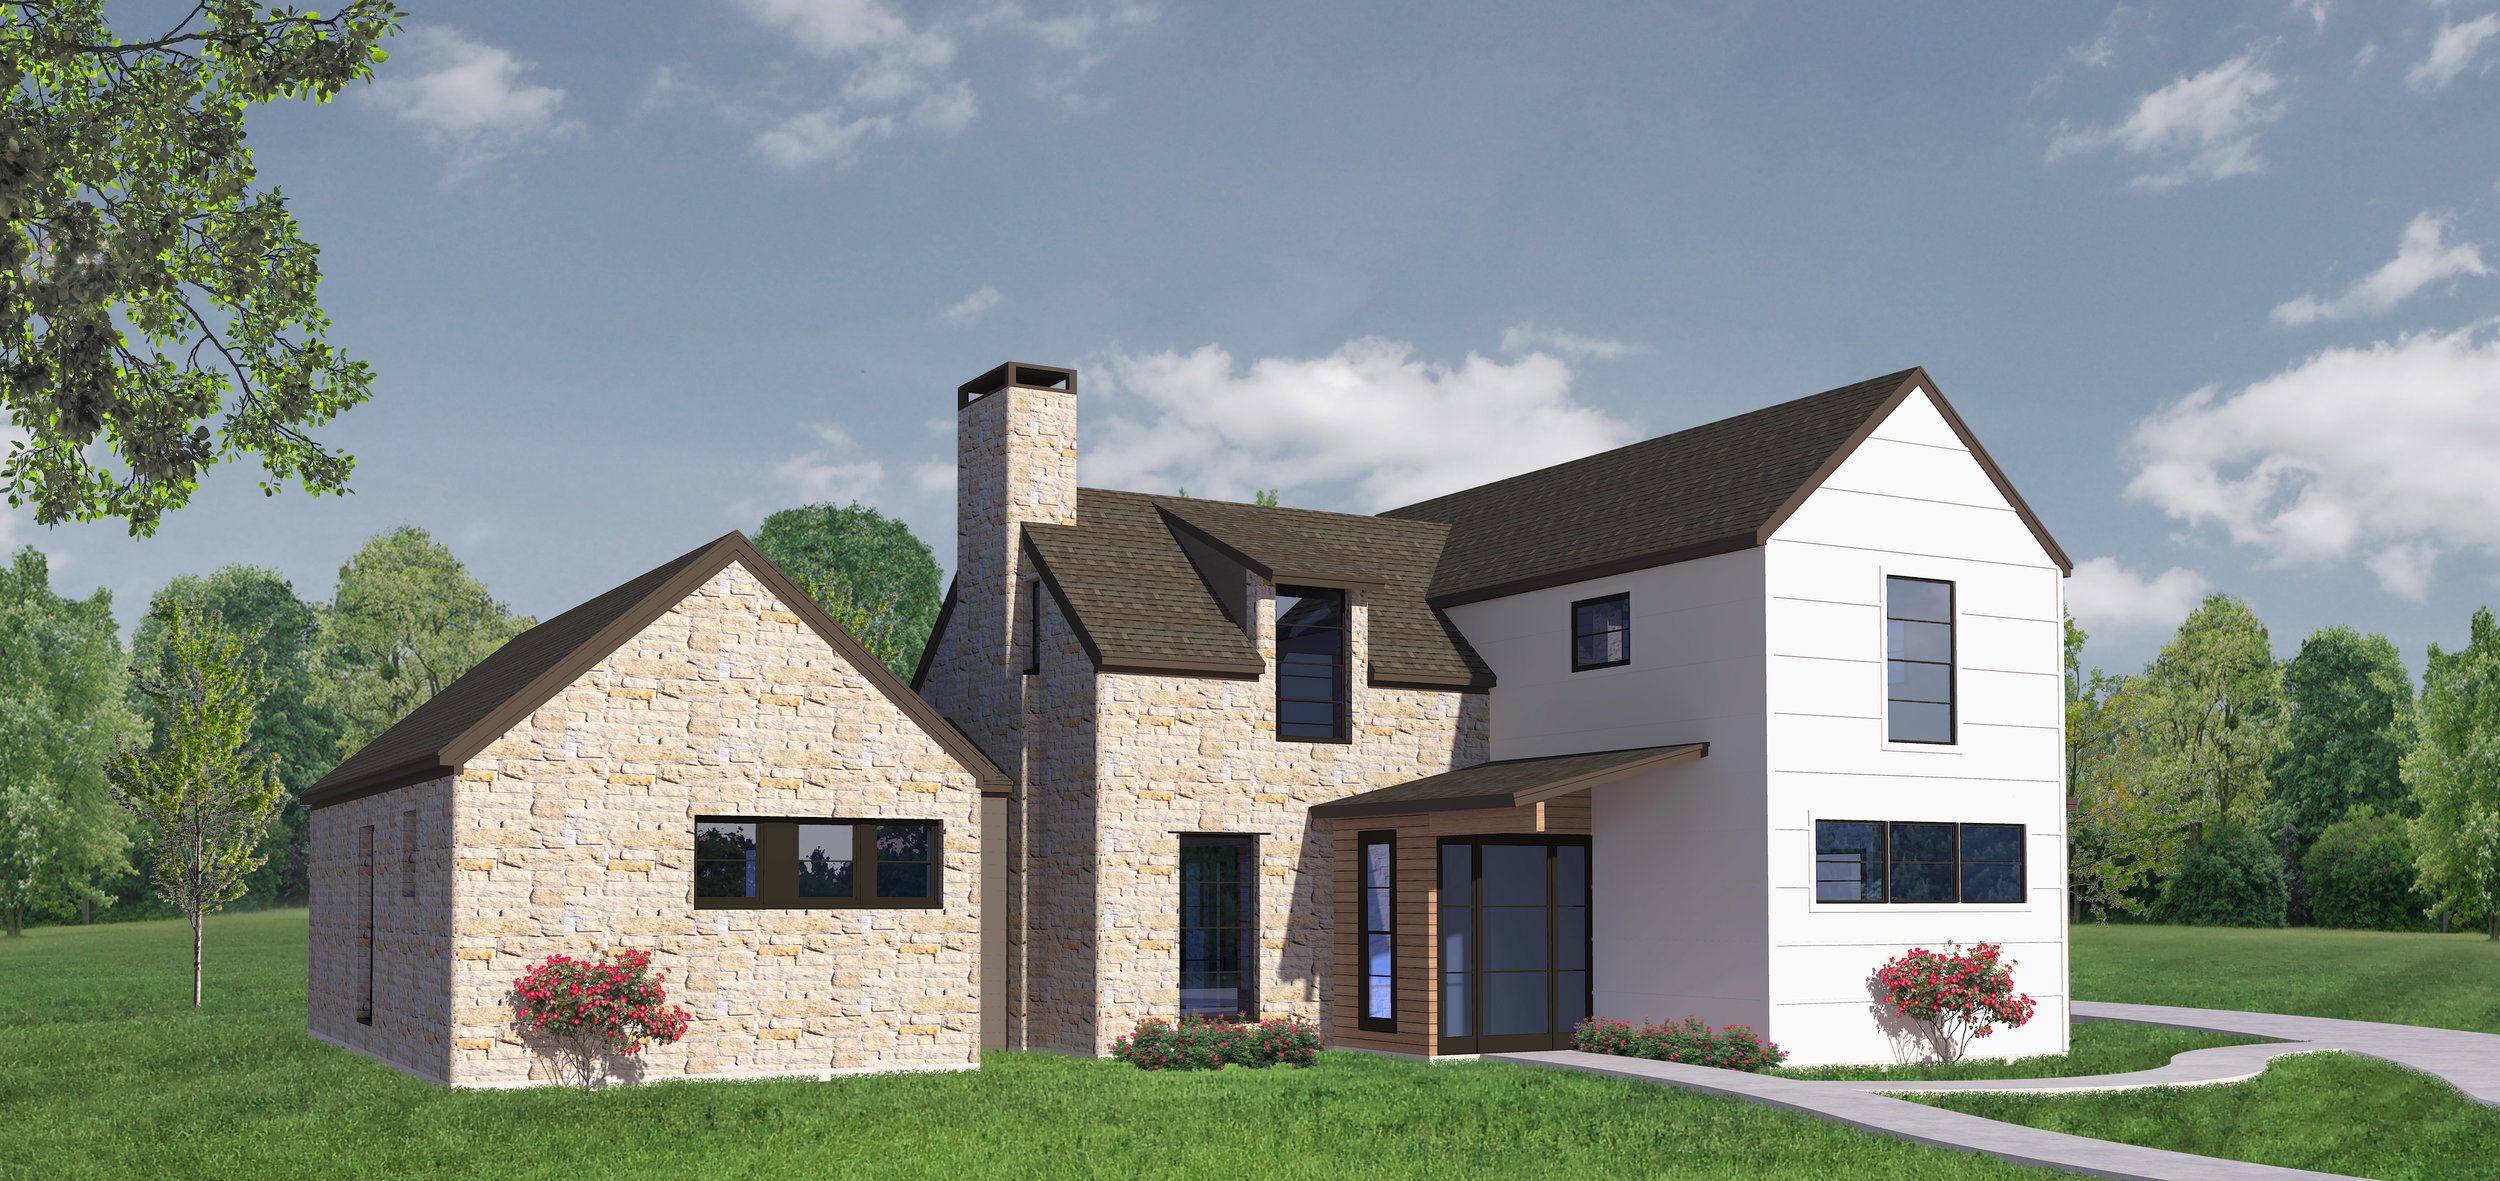 Modern Farmhouse at Gateway Village, Denison.